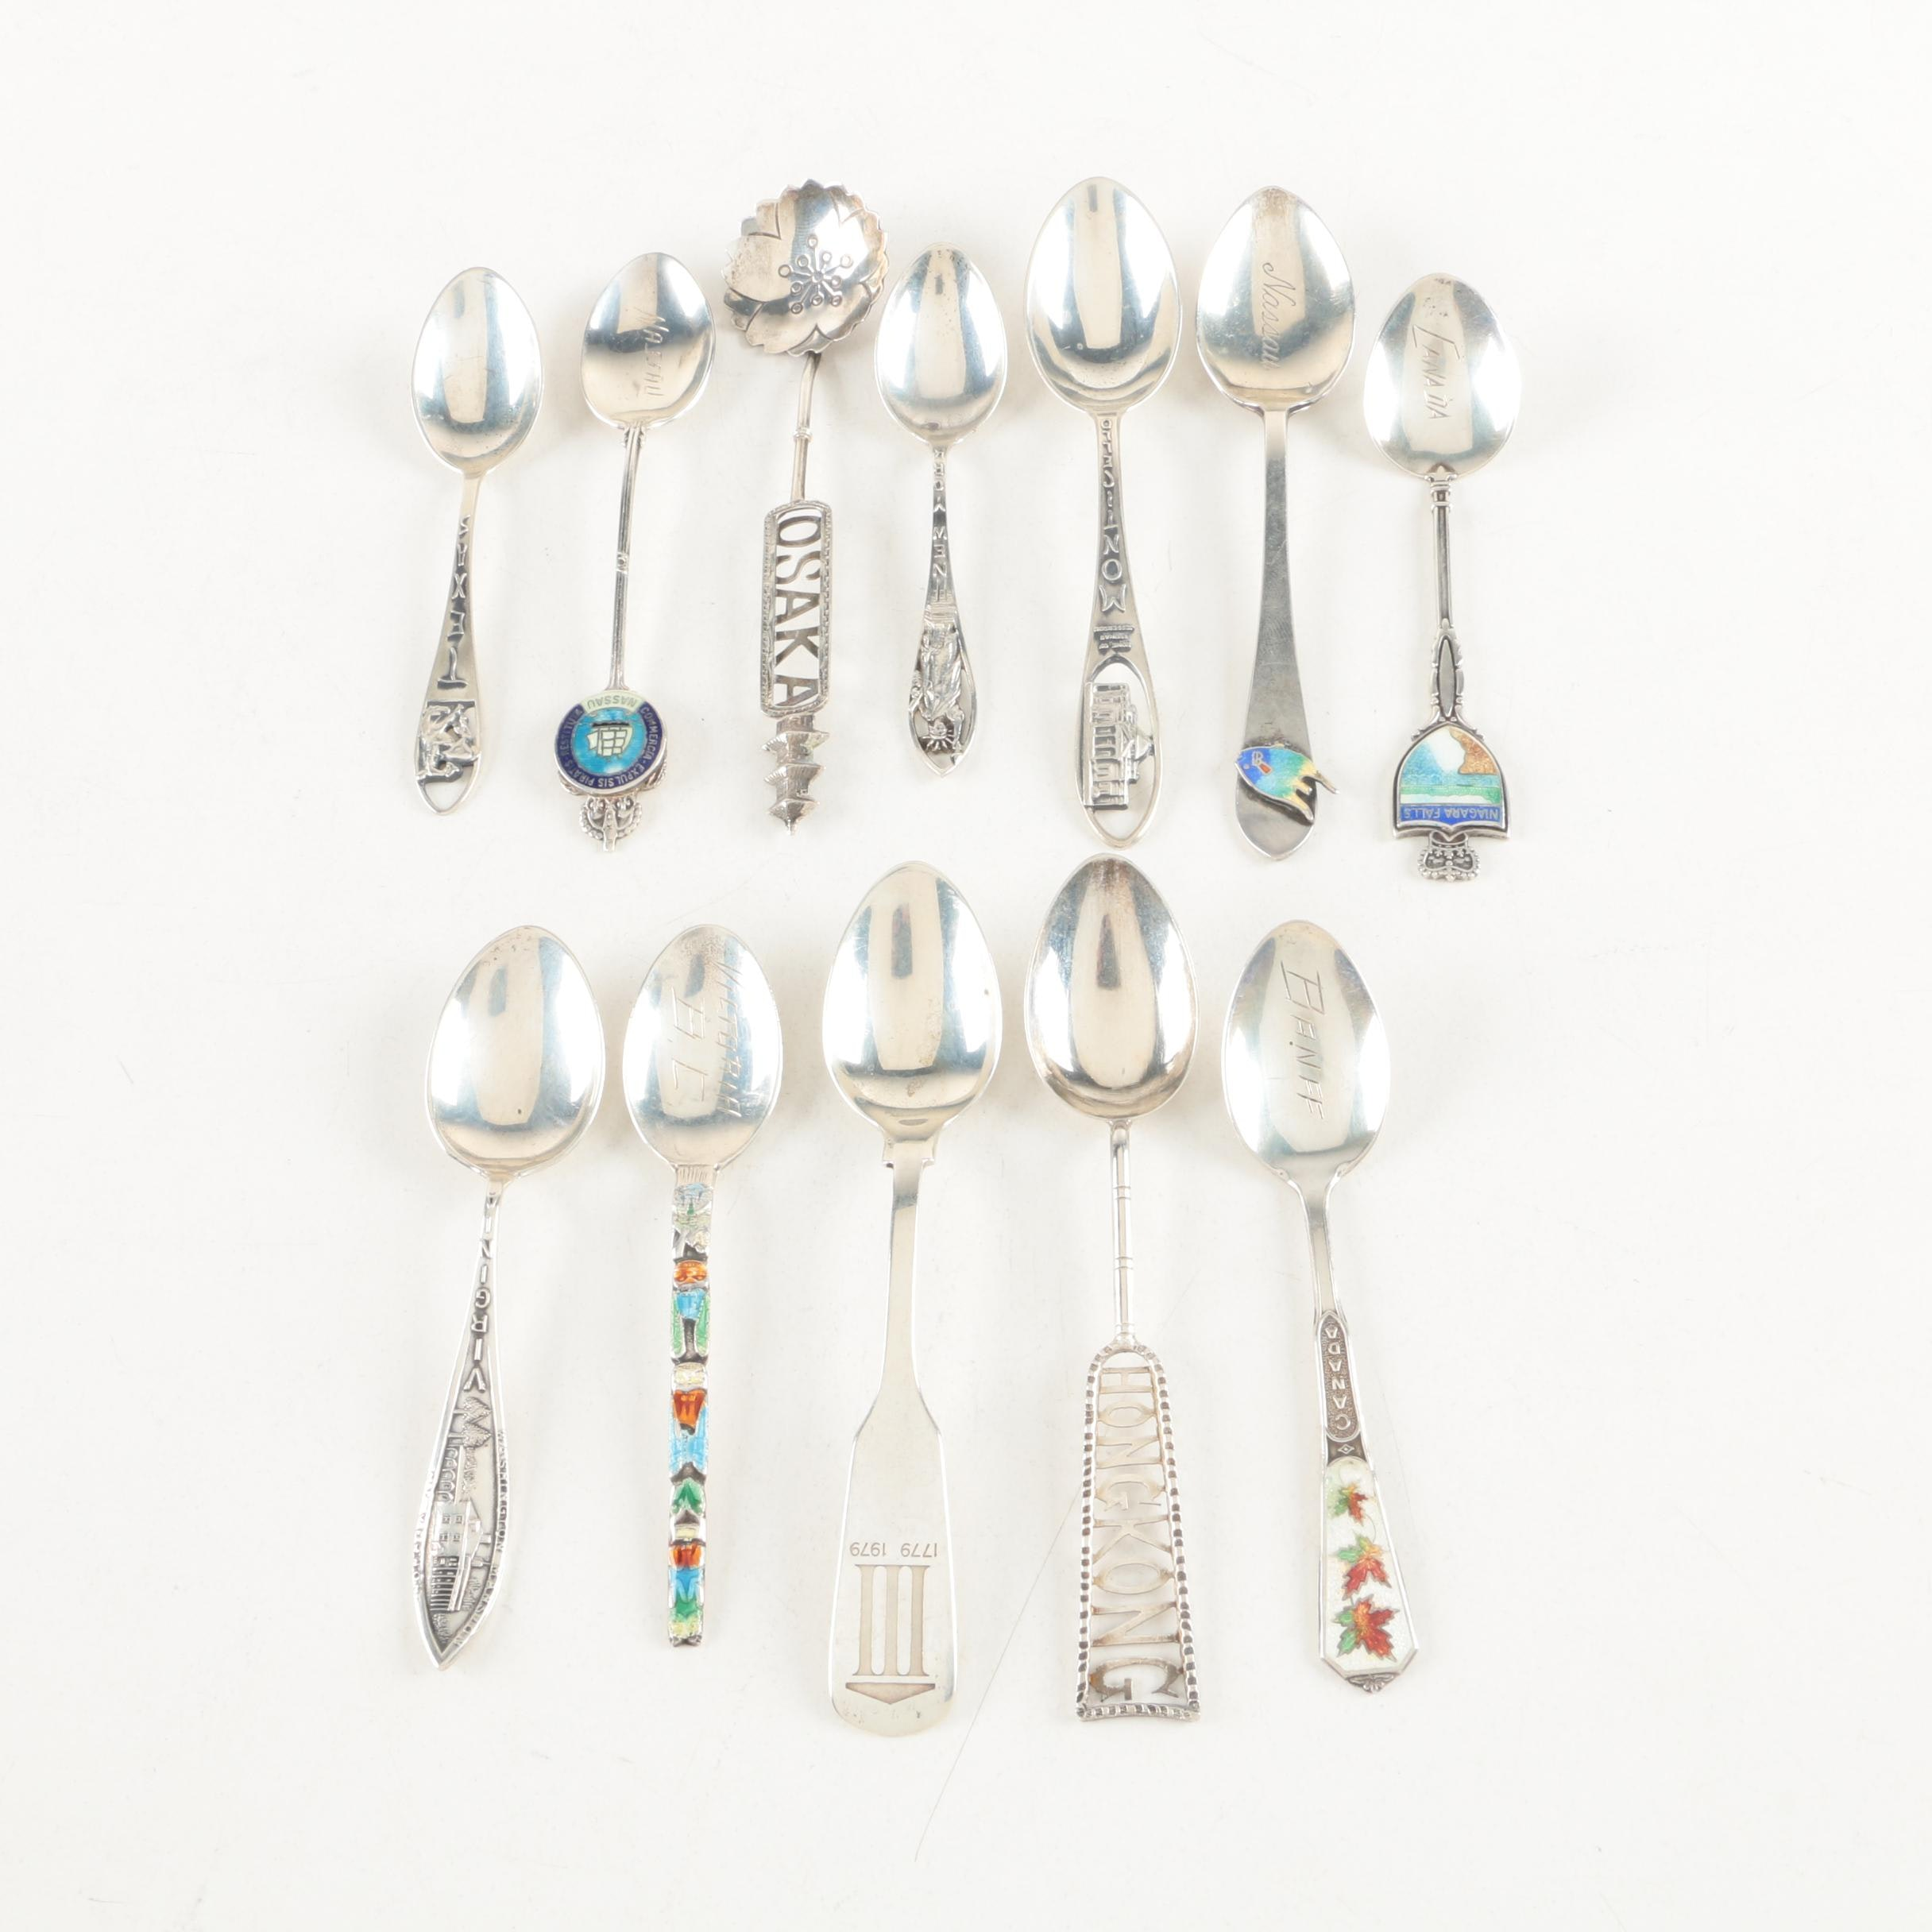 Gorham and Other Sterling Silver Souvenir Spoons